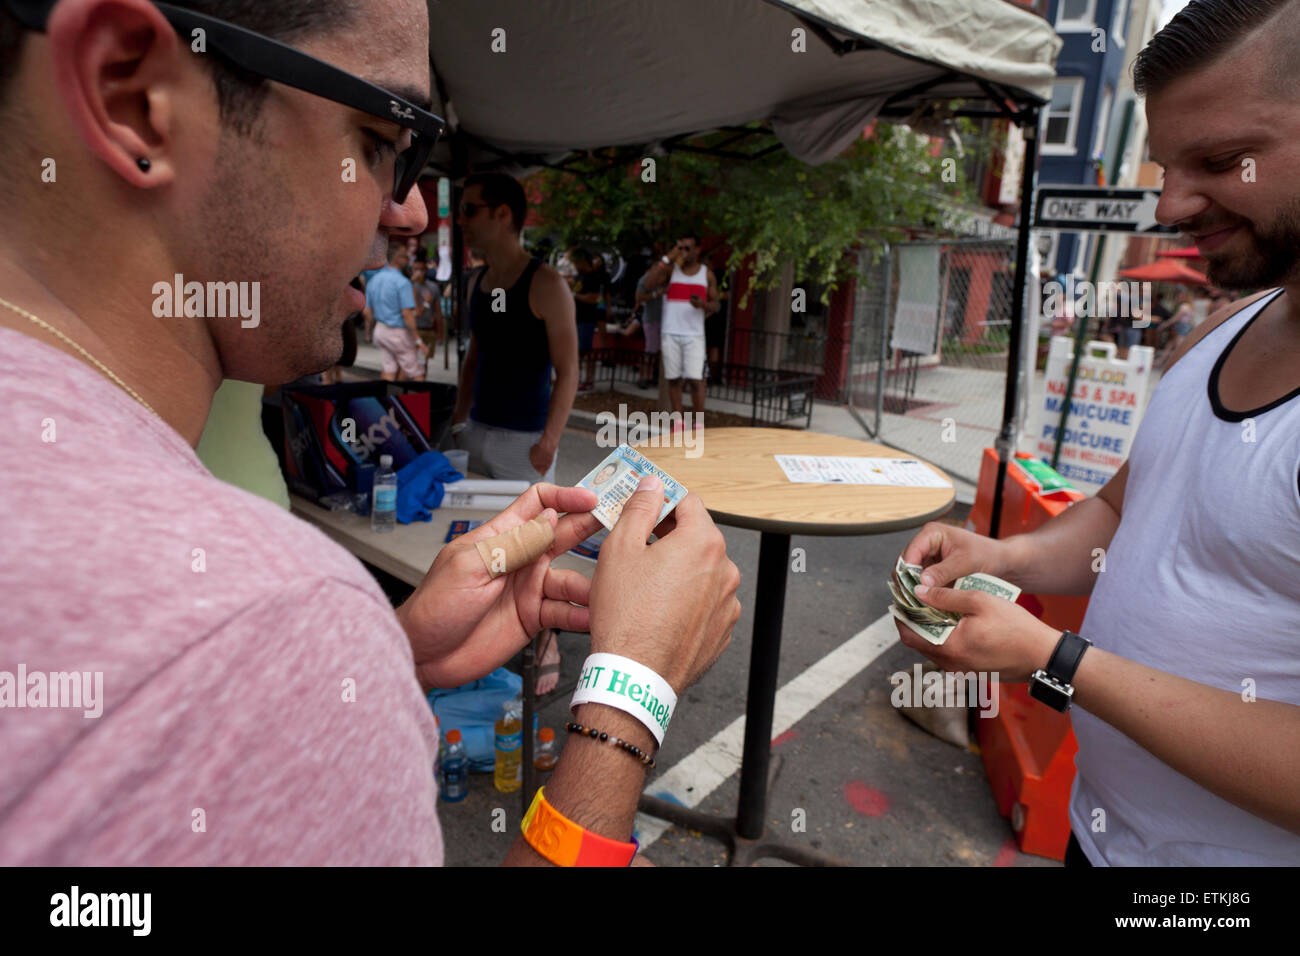 Bouncer checking ID at bar entrance - USA - Stock Image